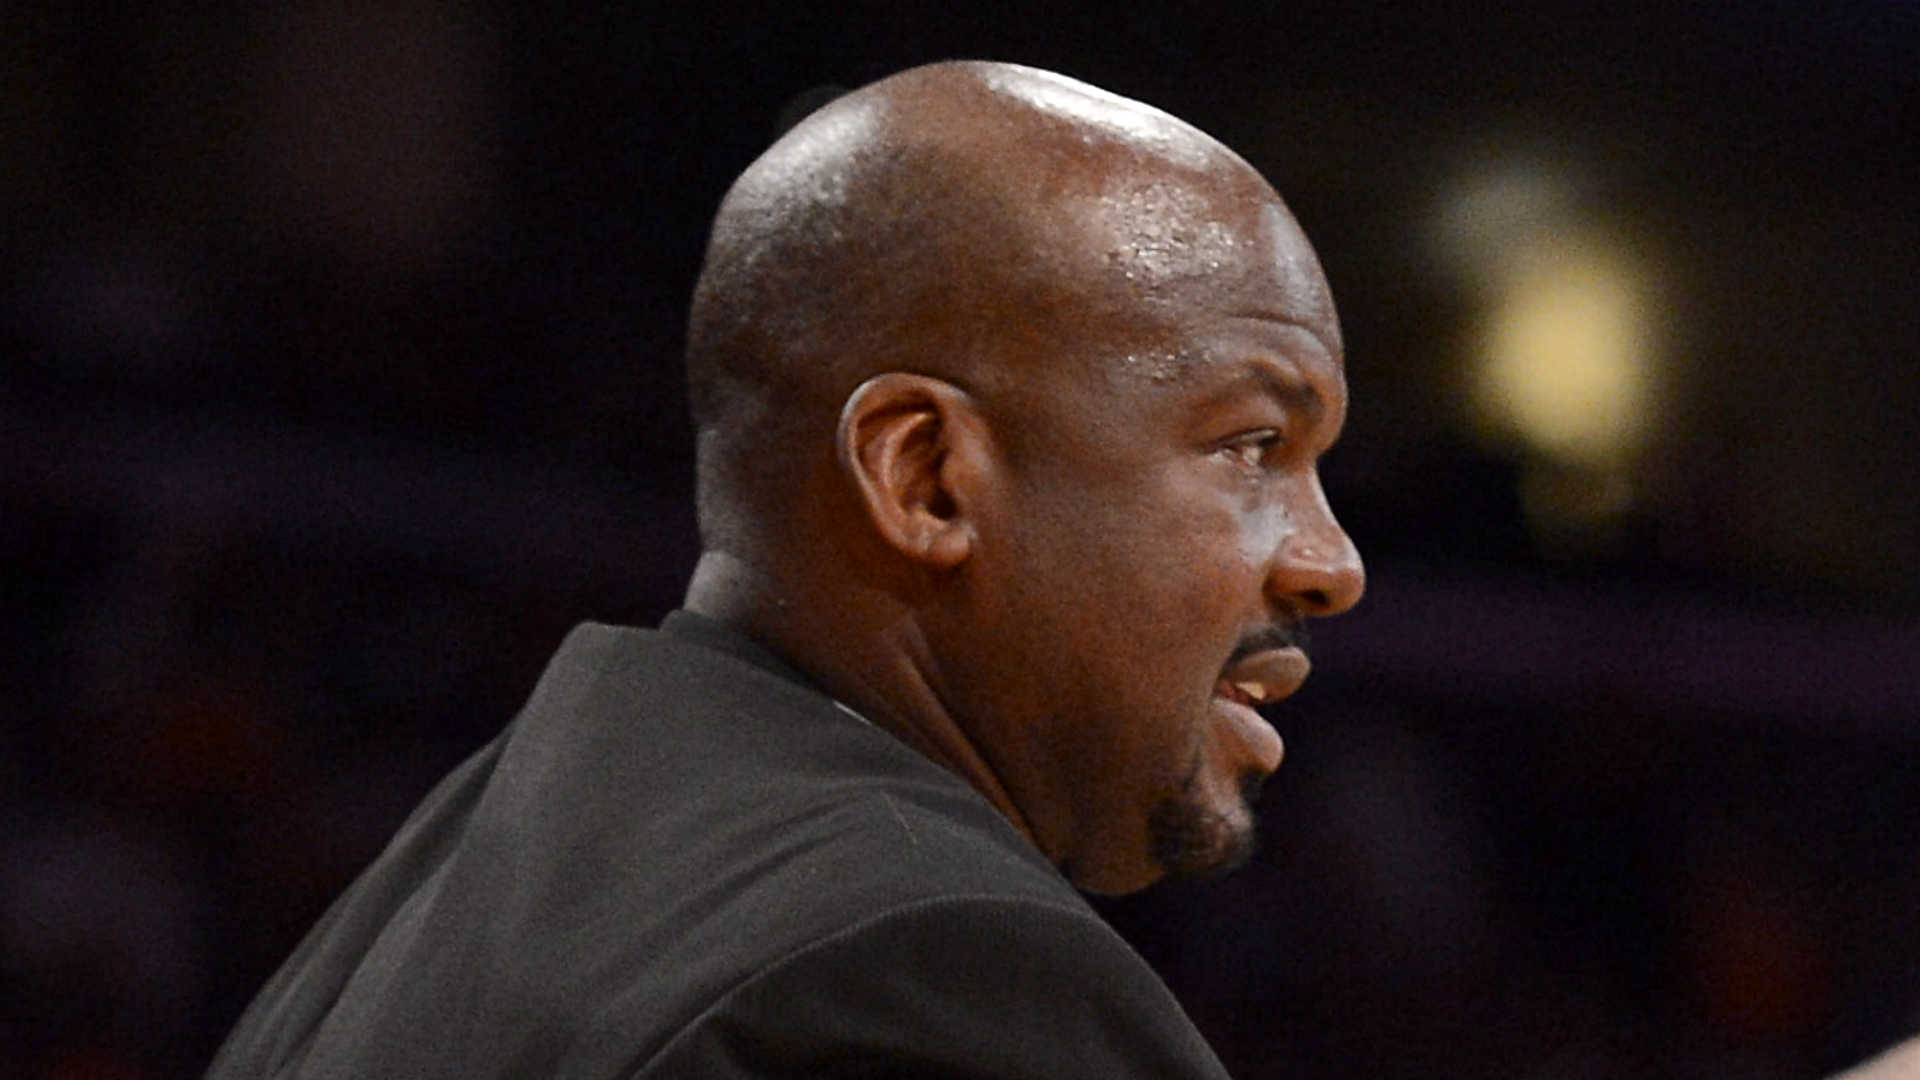 Auburn suspends Chuck Person without pay following arrest